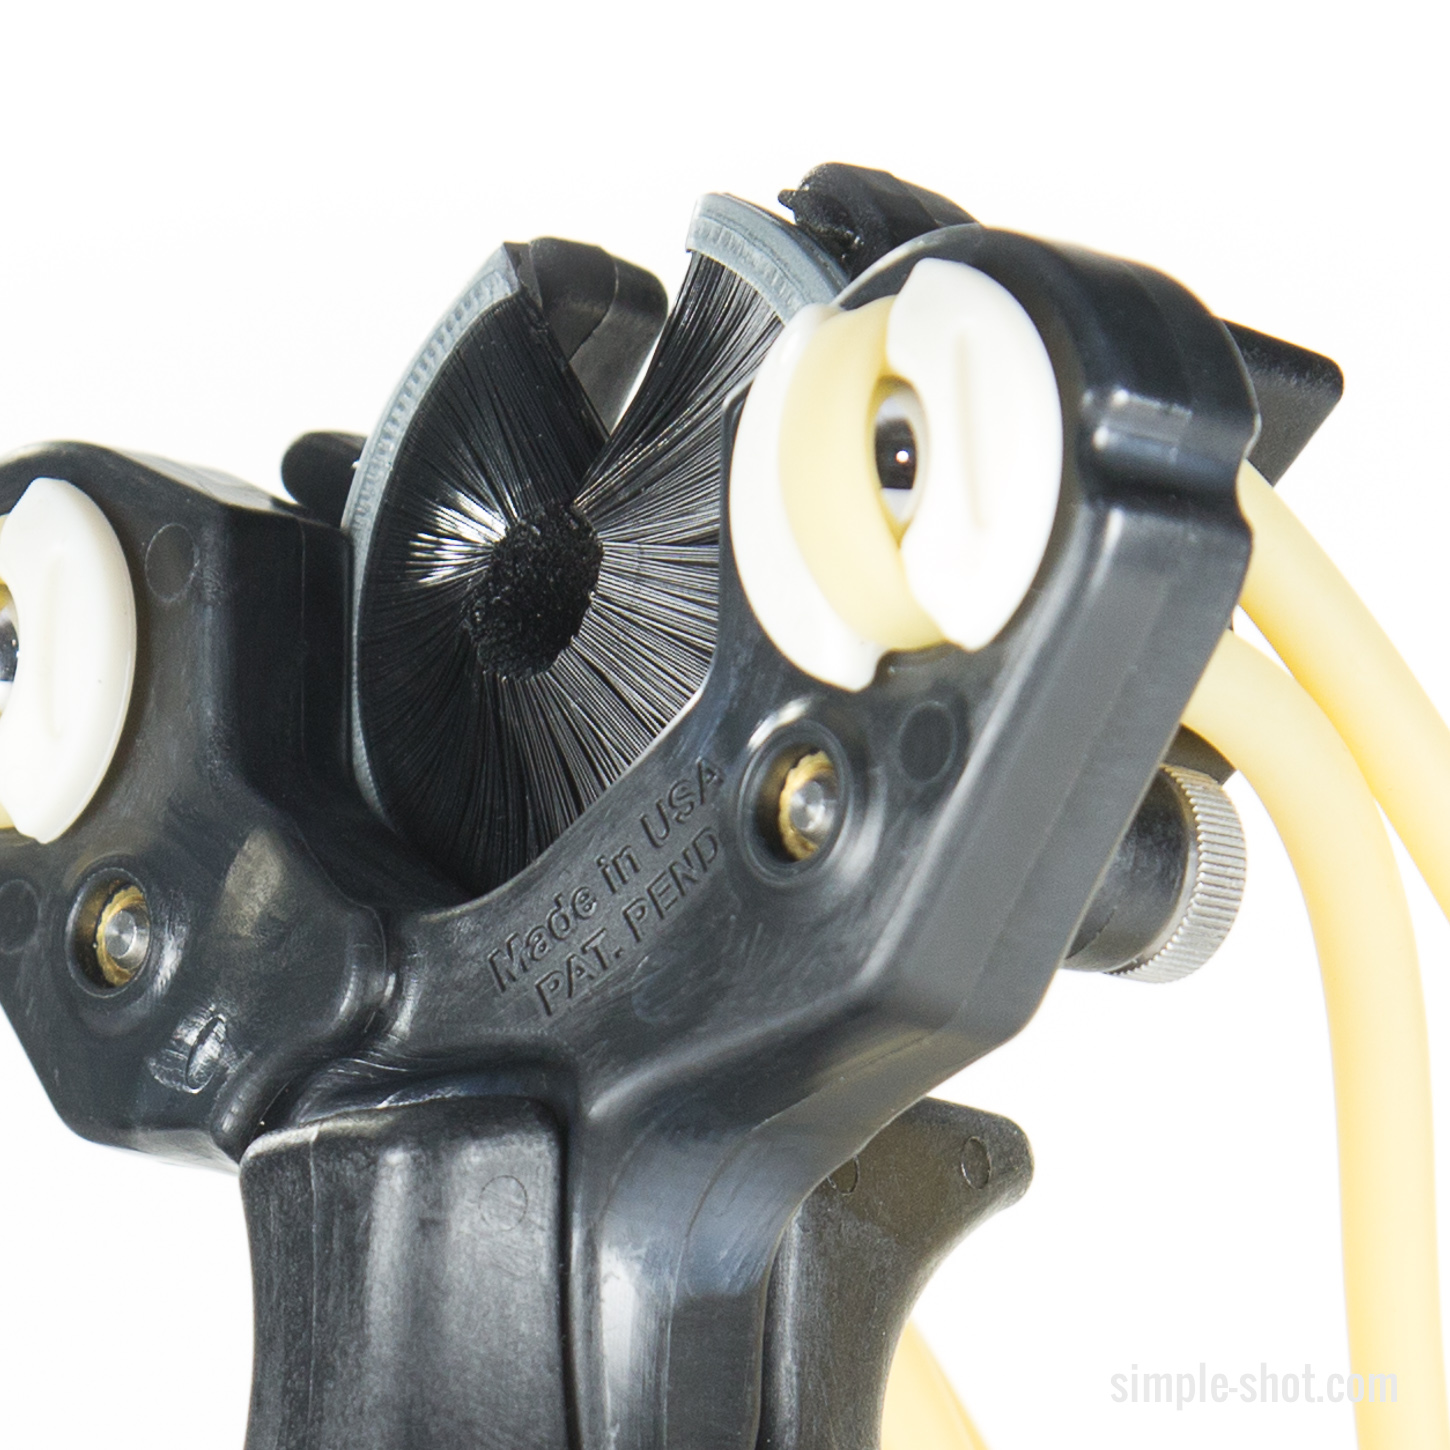 The Hammer Slingbow head closeup in black with double bands